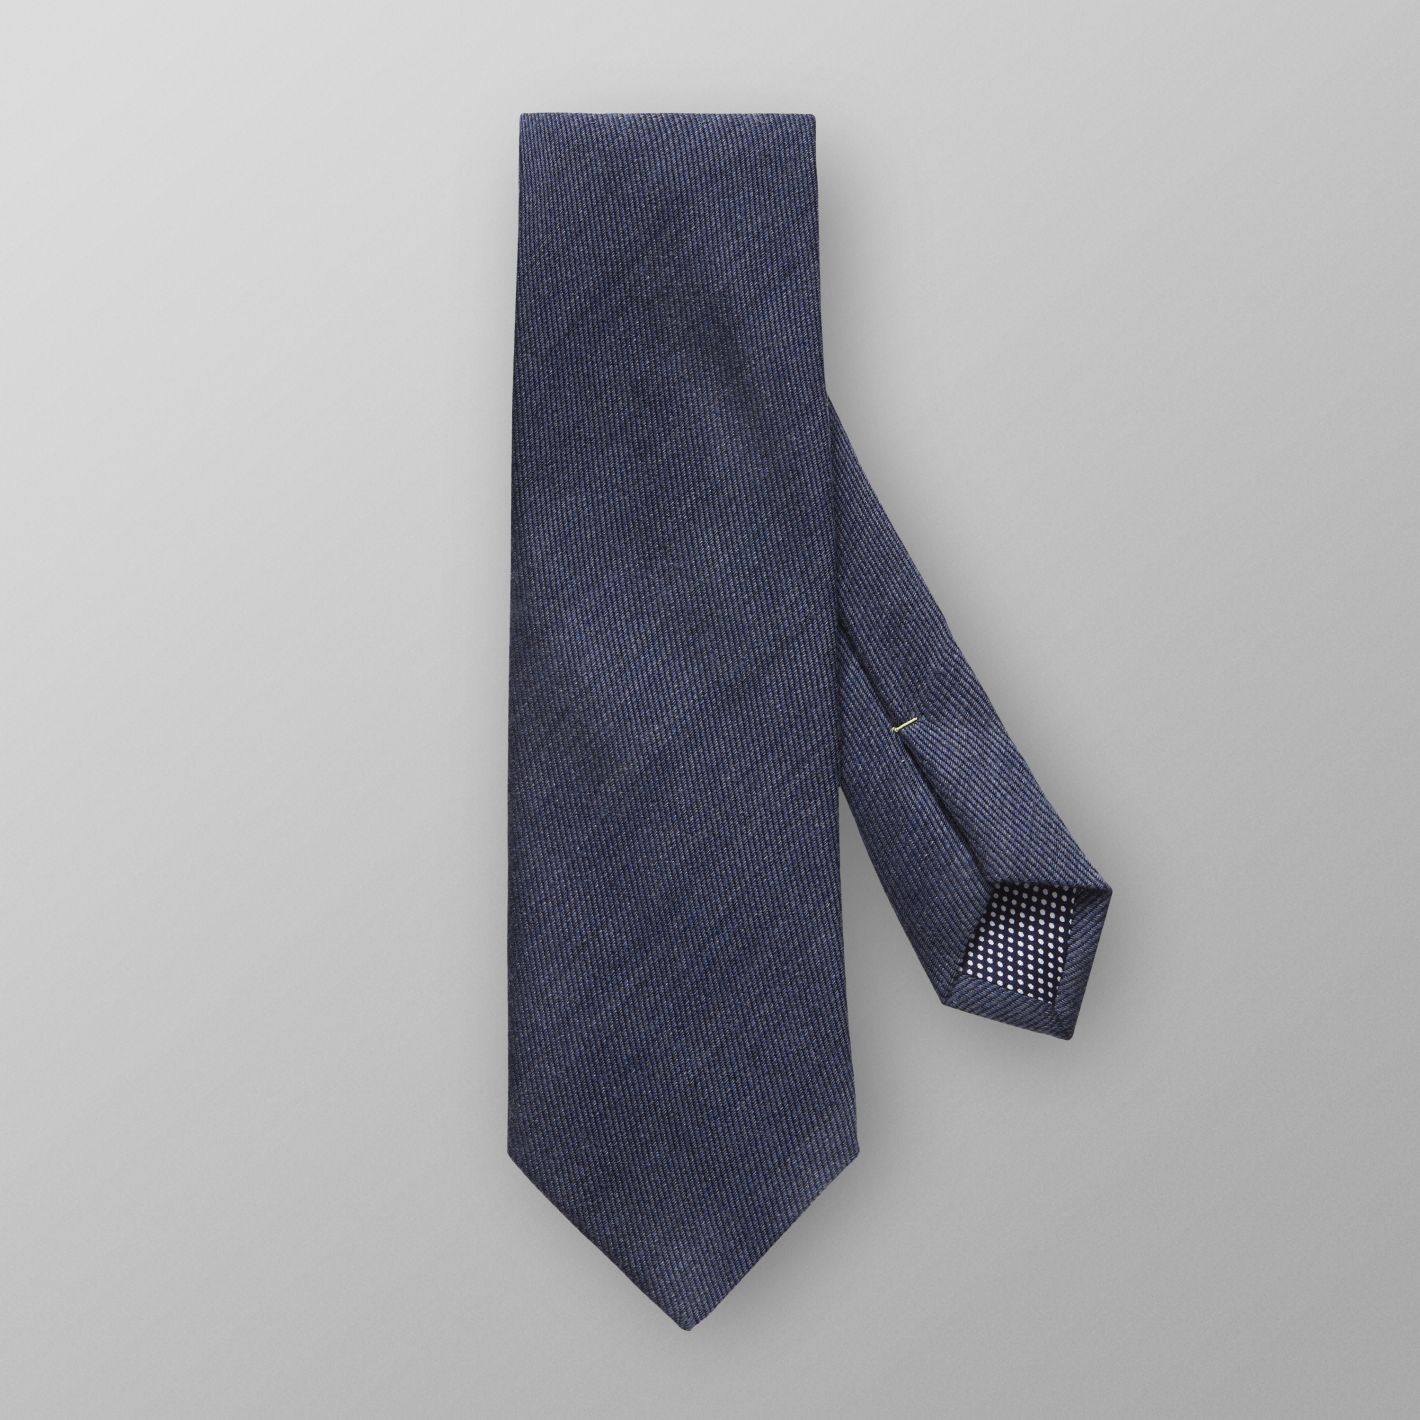 Premium quality made in Italy men's wool tie blue color